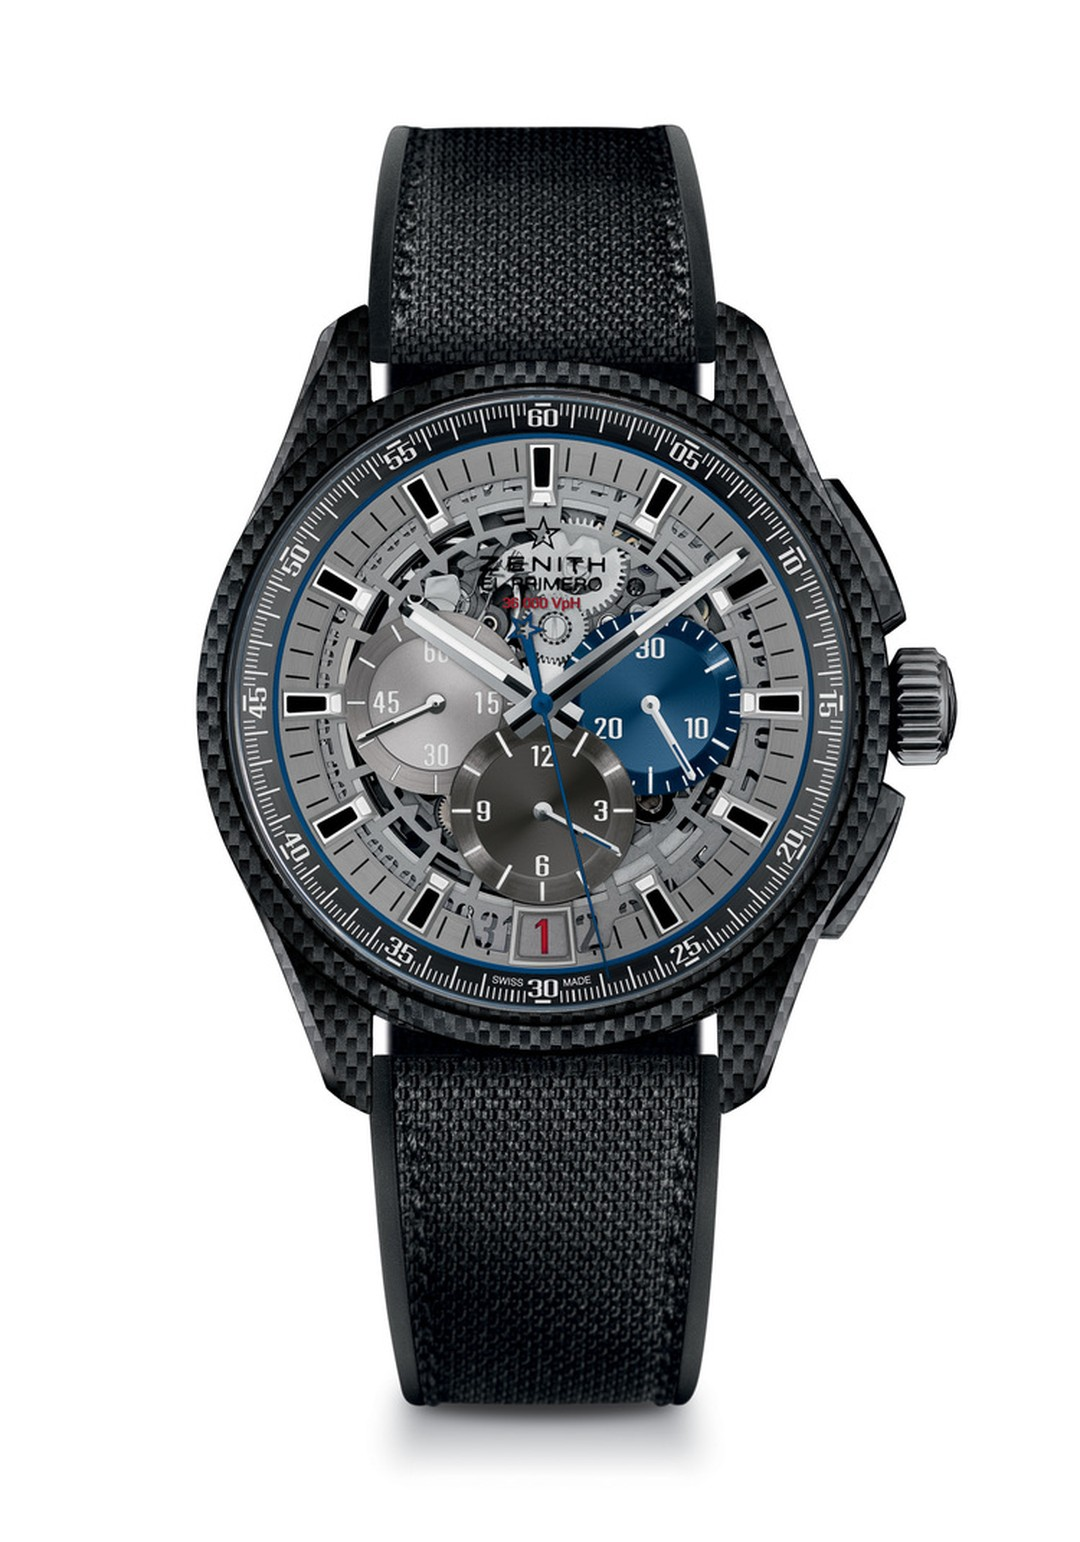 The GPHG Sports Prize went to Zenith's El Primero Lightweight chronograph.